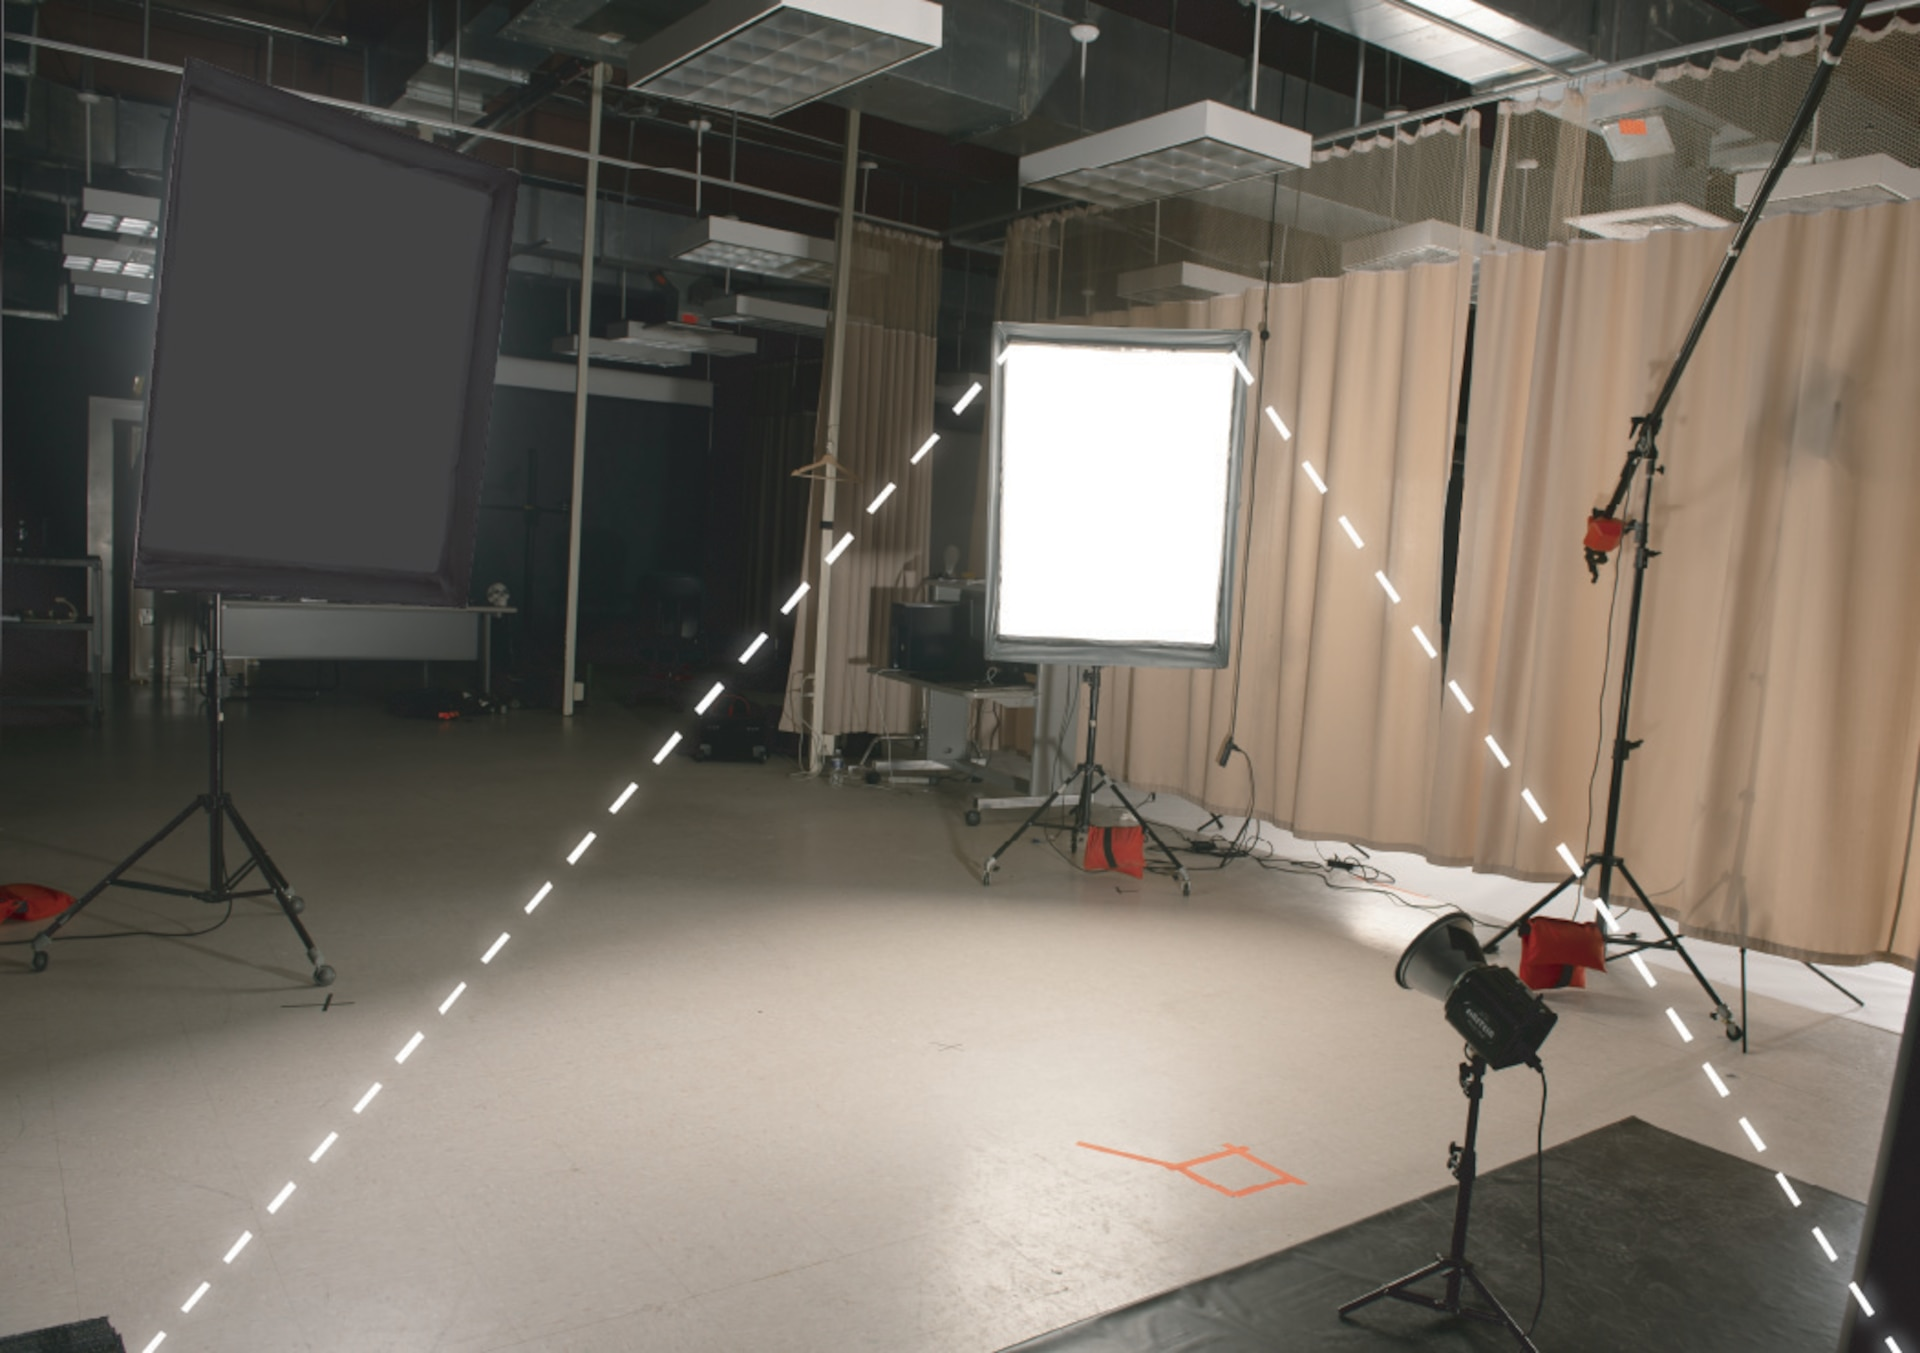 The fill light that fills in or lightens any shadows produced by the main light in a studio setting.